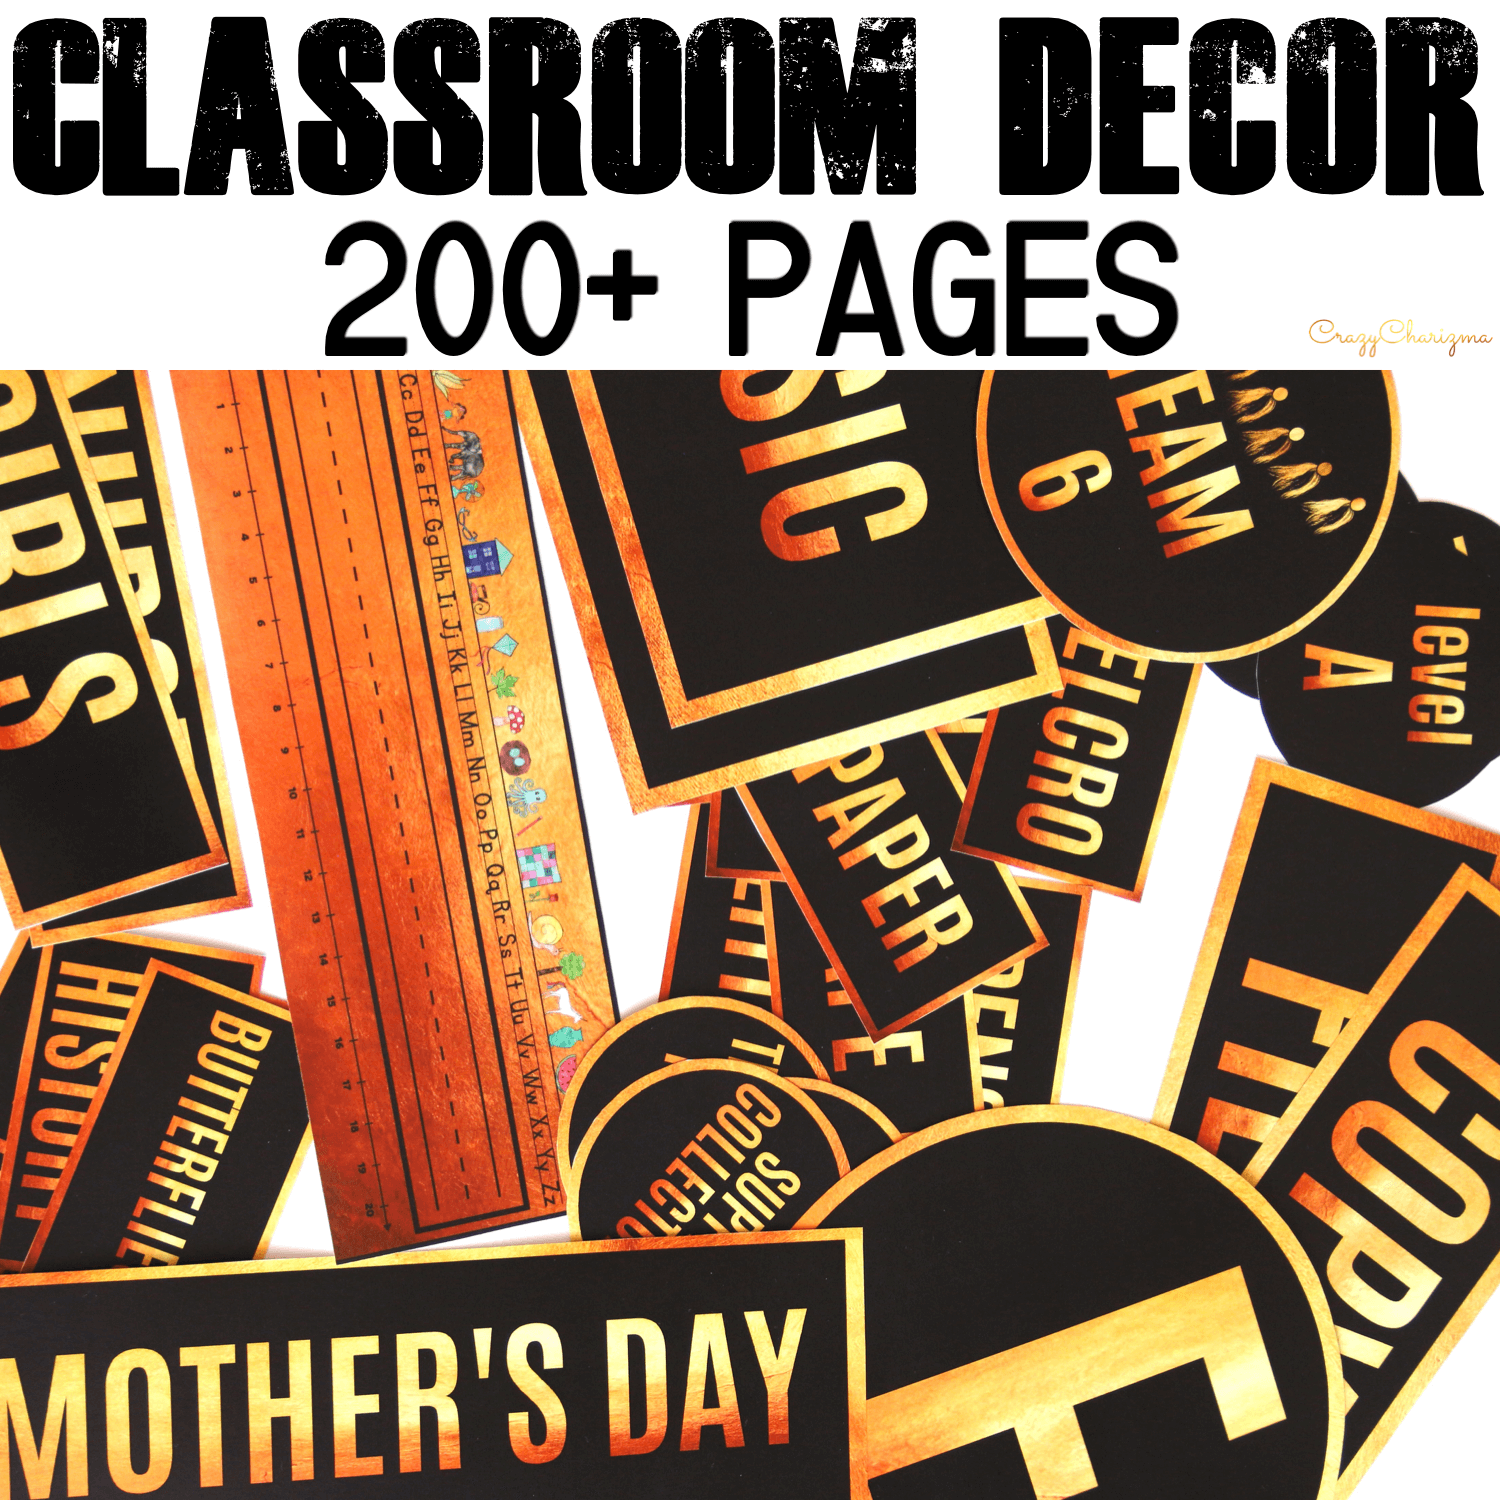 Looking for stylish decor? Love black and gold? This huge decor set is what you need and will love! There are over 200+ pages of printables. Find inside classroom jobs labels, name tags, alphabet posters, numbers posters, centers signs, table signs, hall passes, schedule, calendar elements.